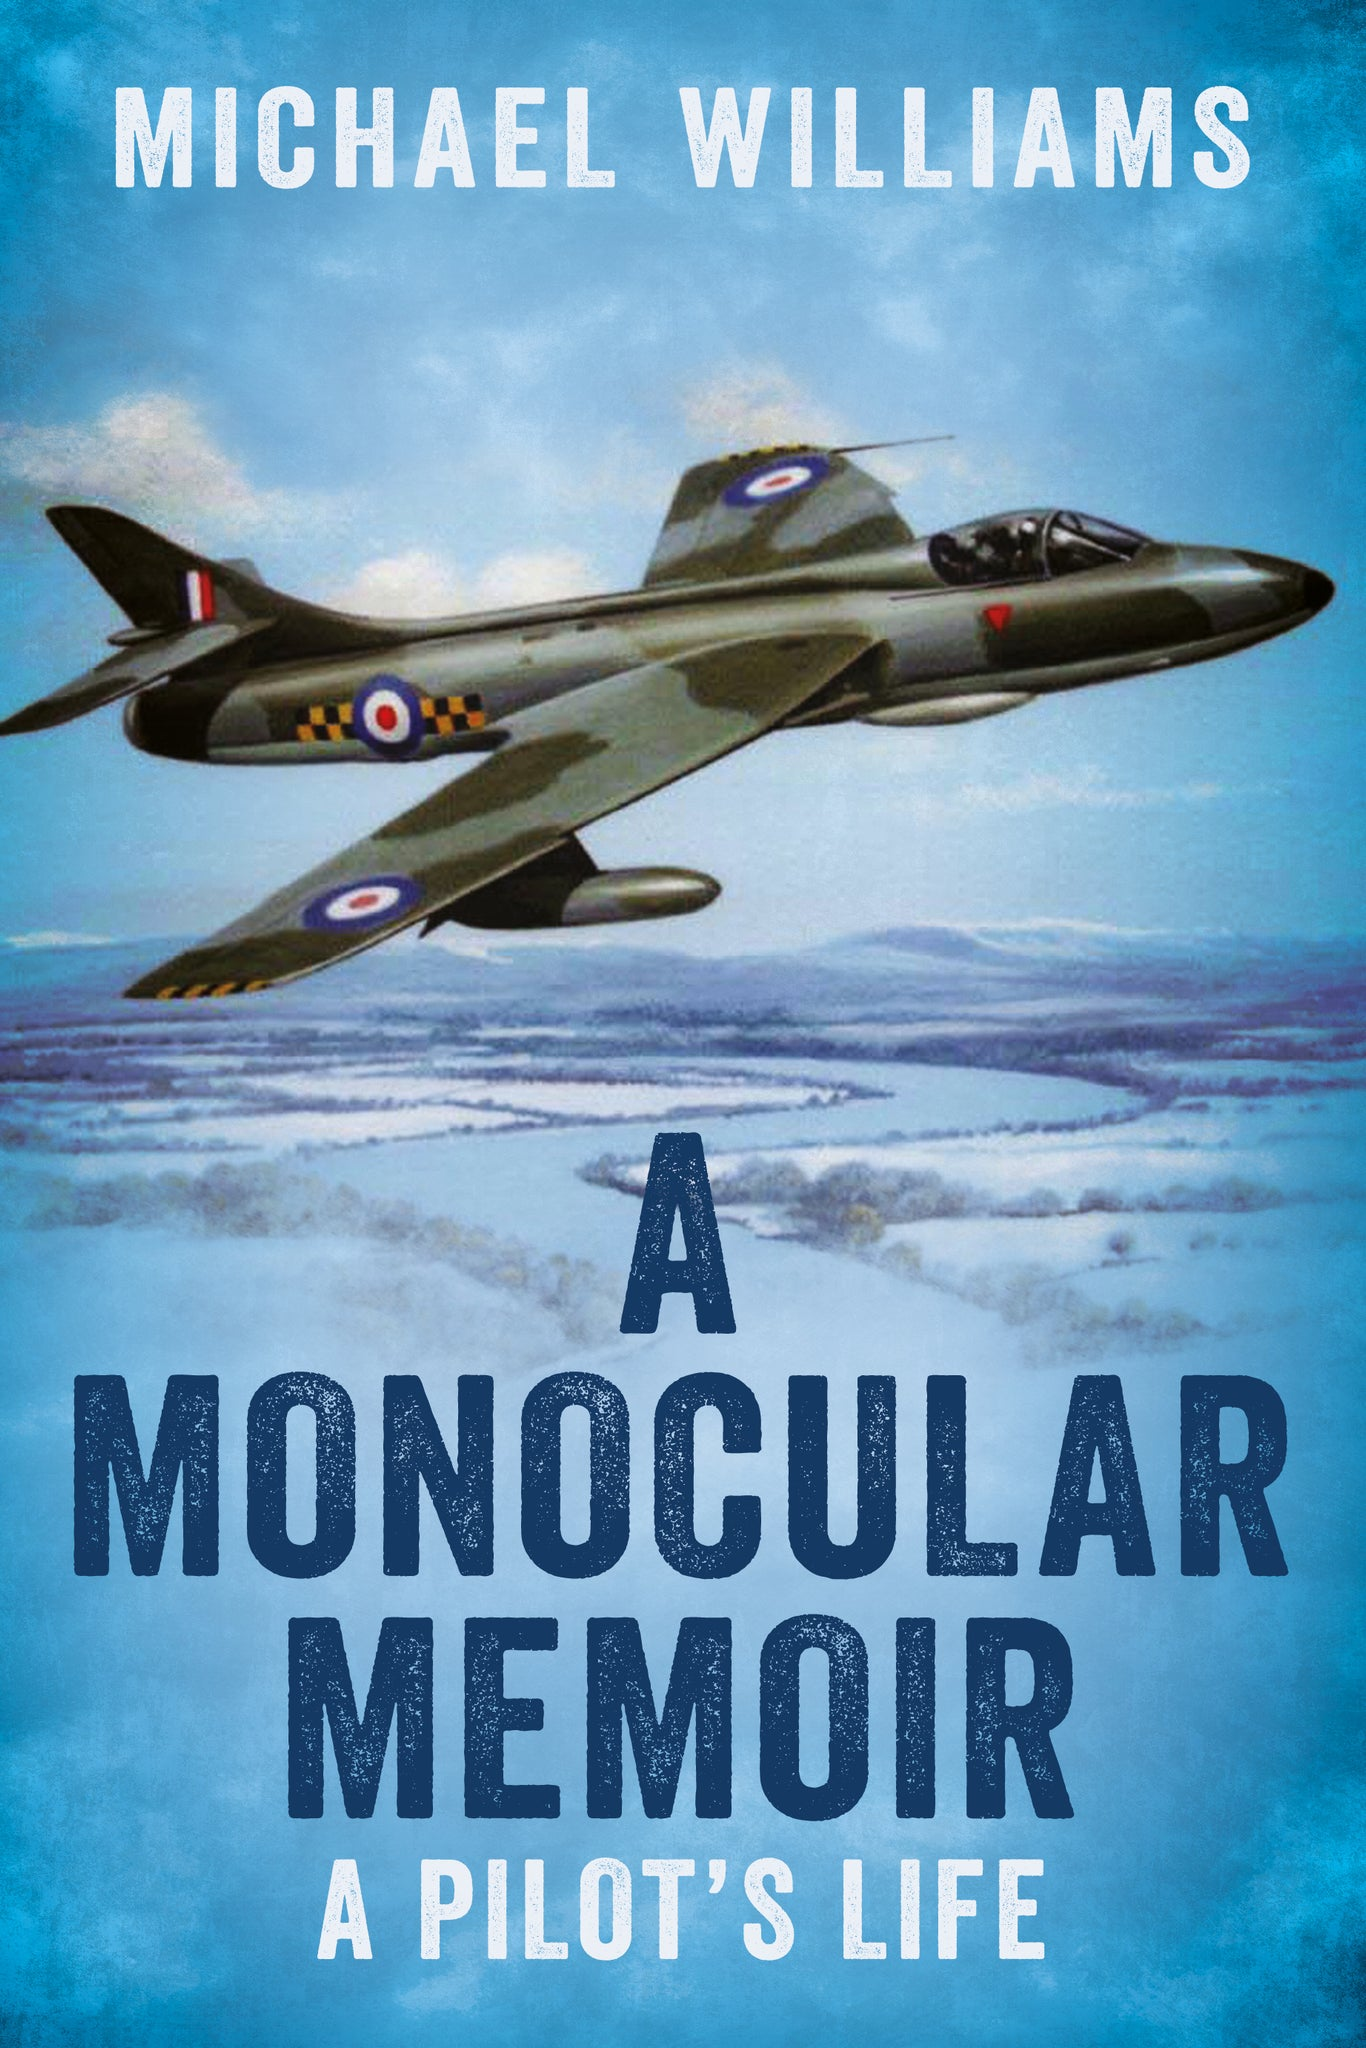 A Monocular Memoir: A Pilot's Life - available now from Fonthill Media